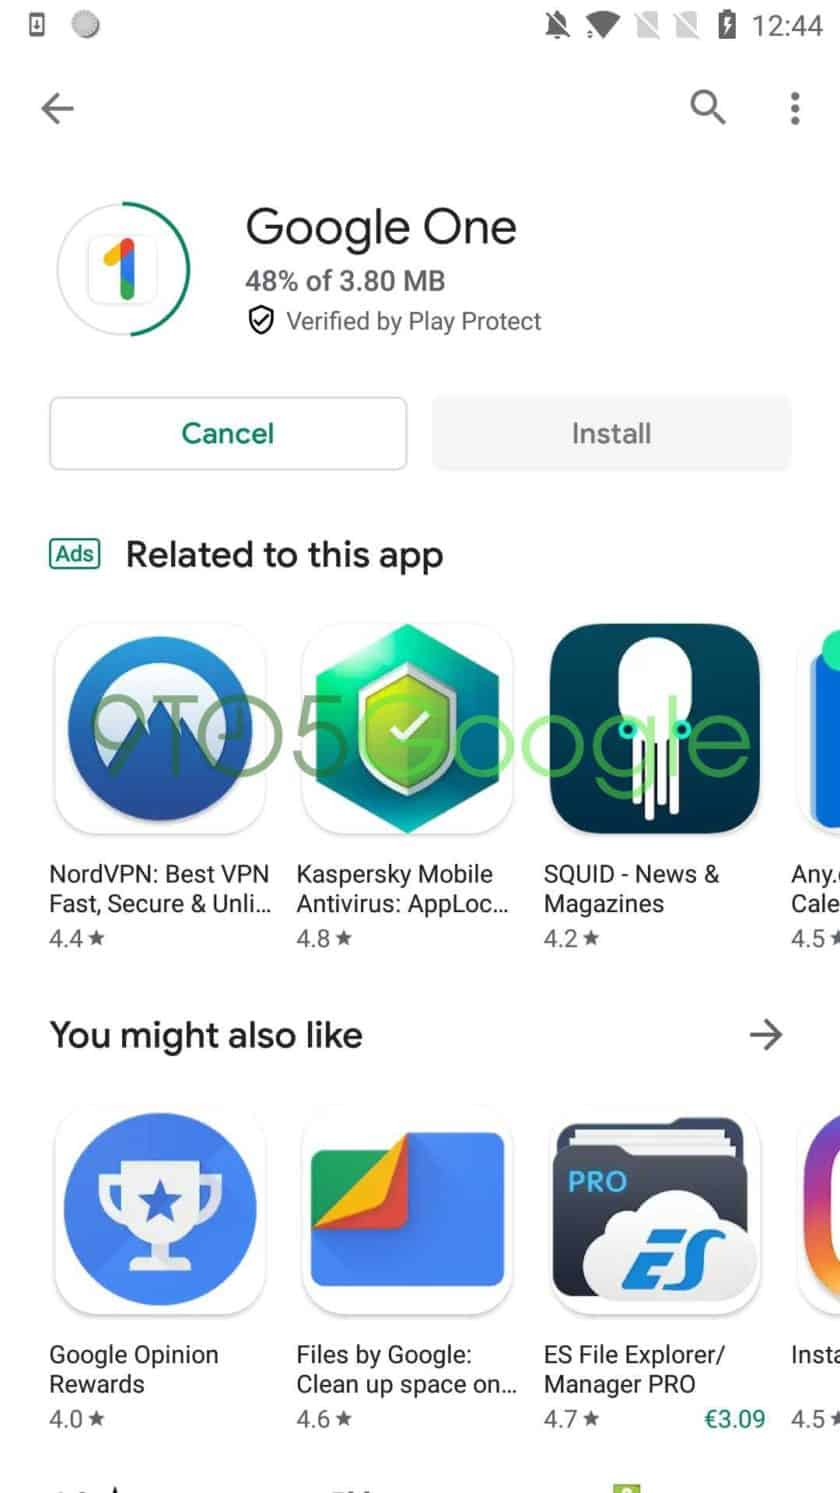 Screenshot of the Google Play Store's new Material Design change 3